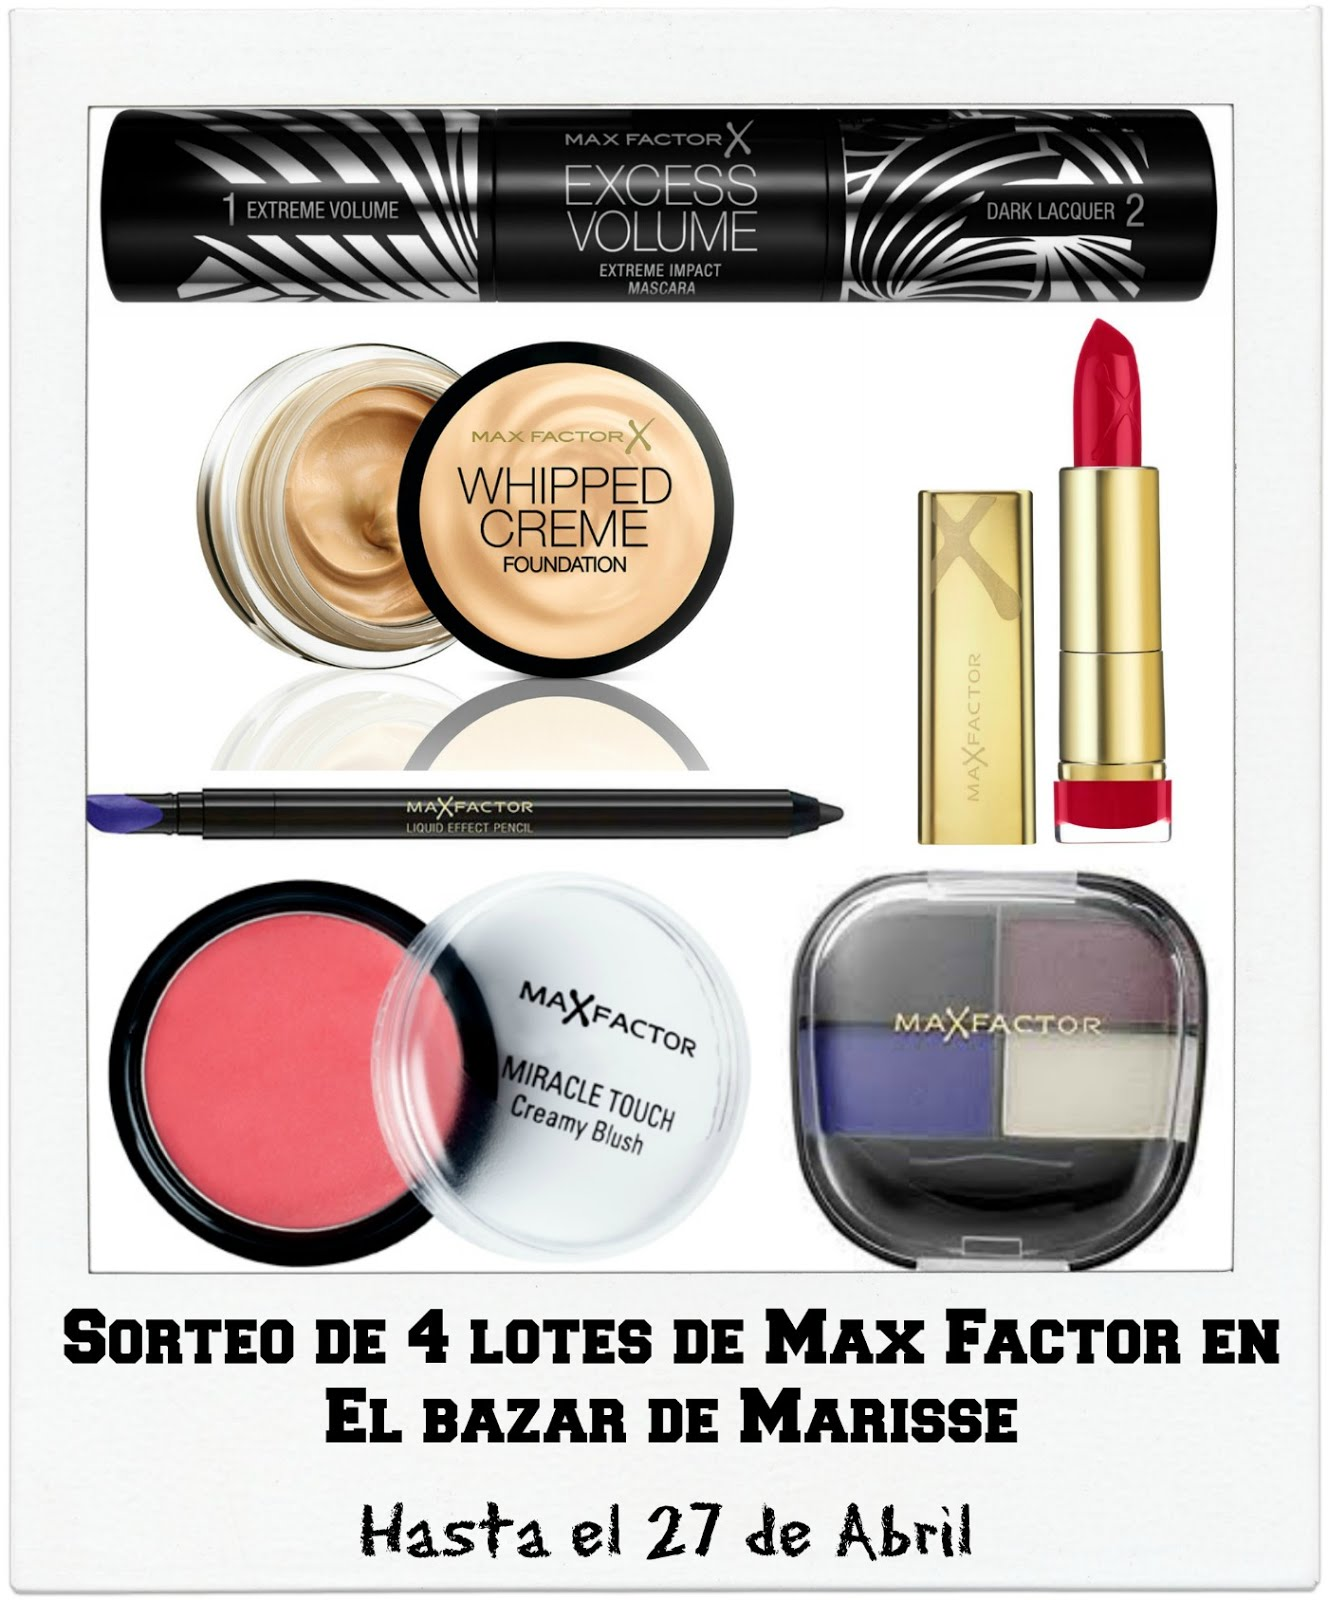 SUPER SORTEO DE MAX FACTOR